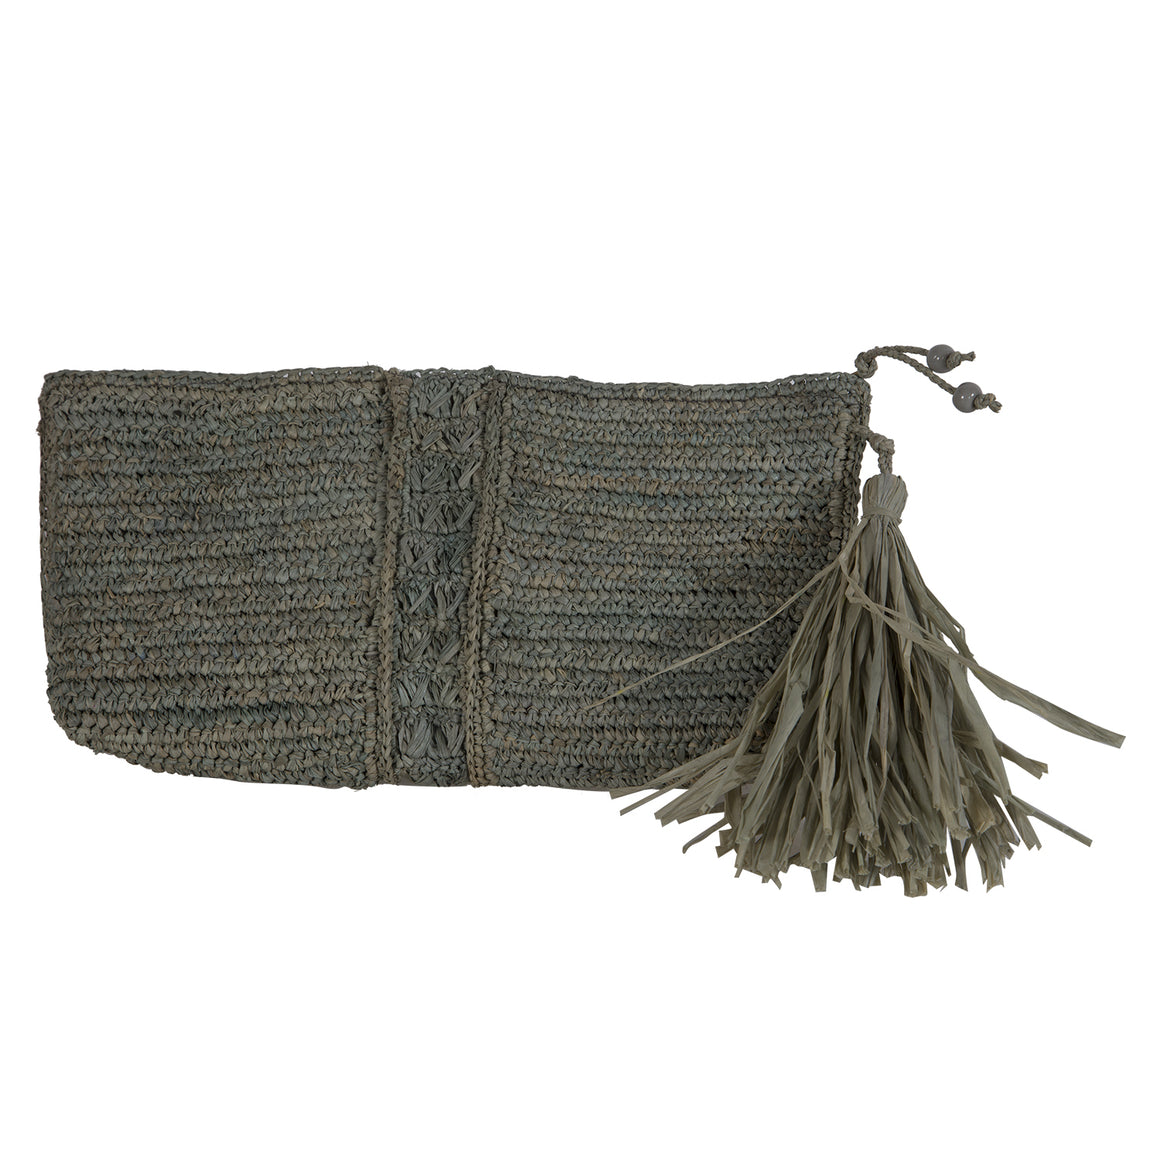 Made In Mada, Ilona Clutch